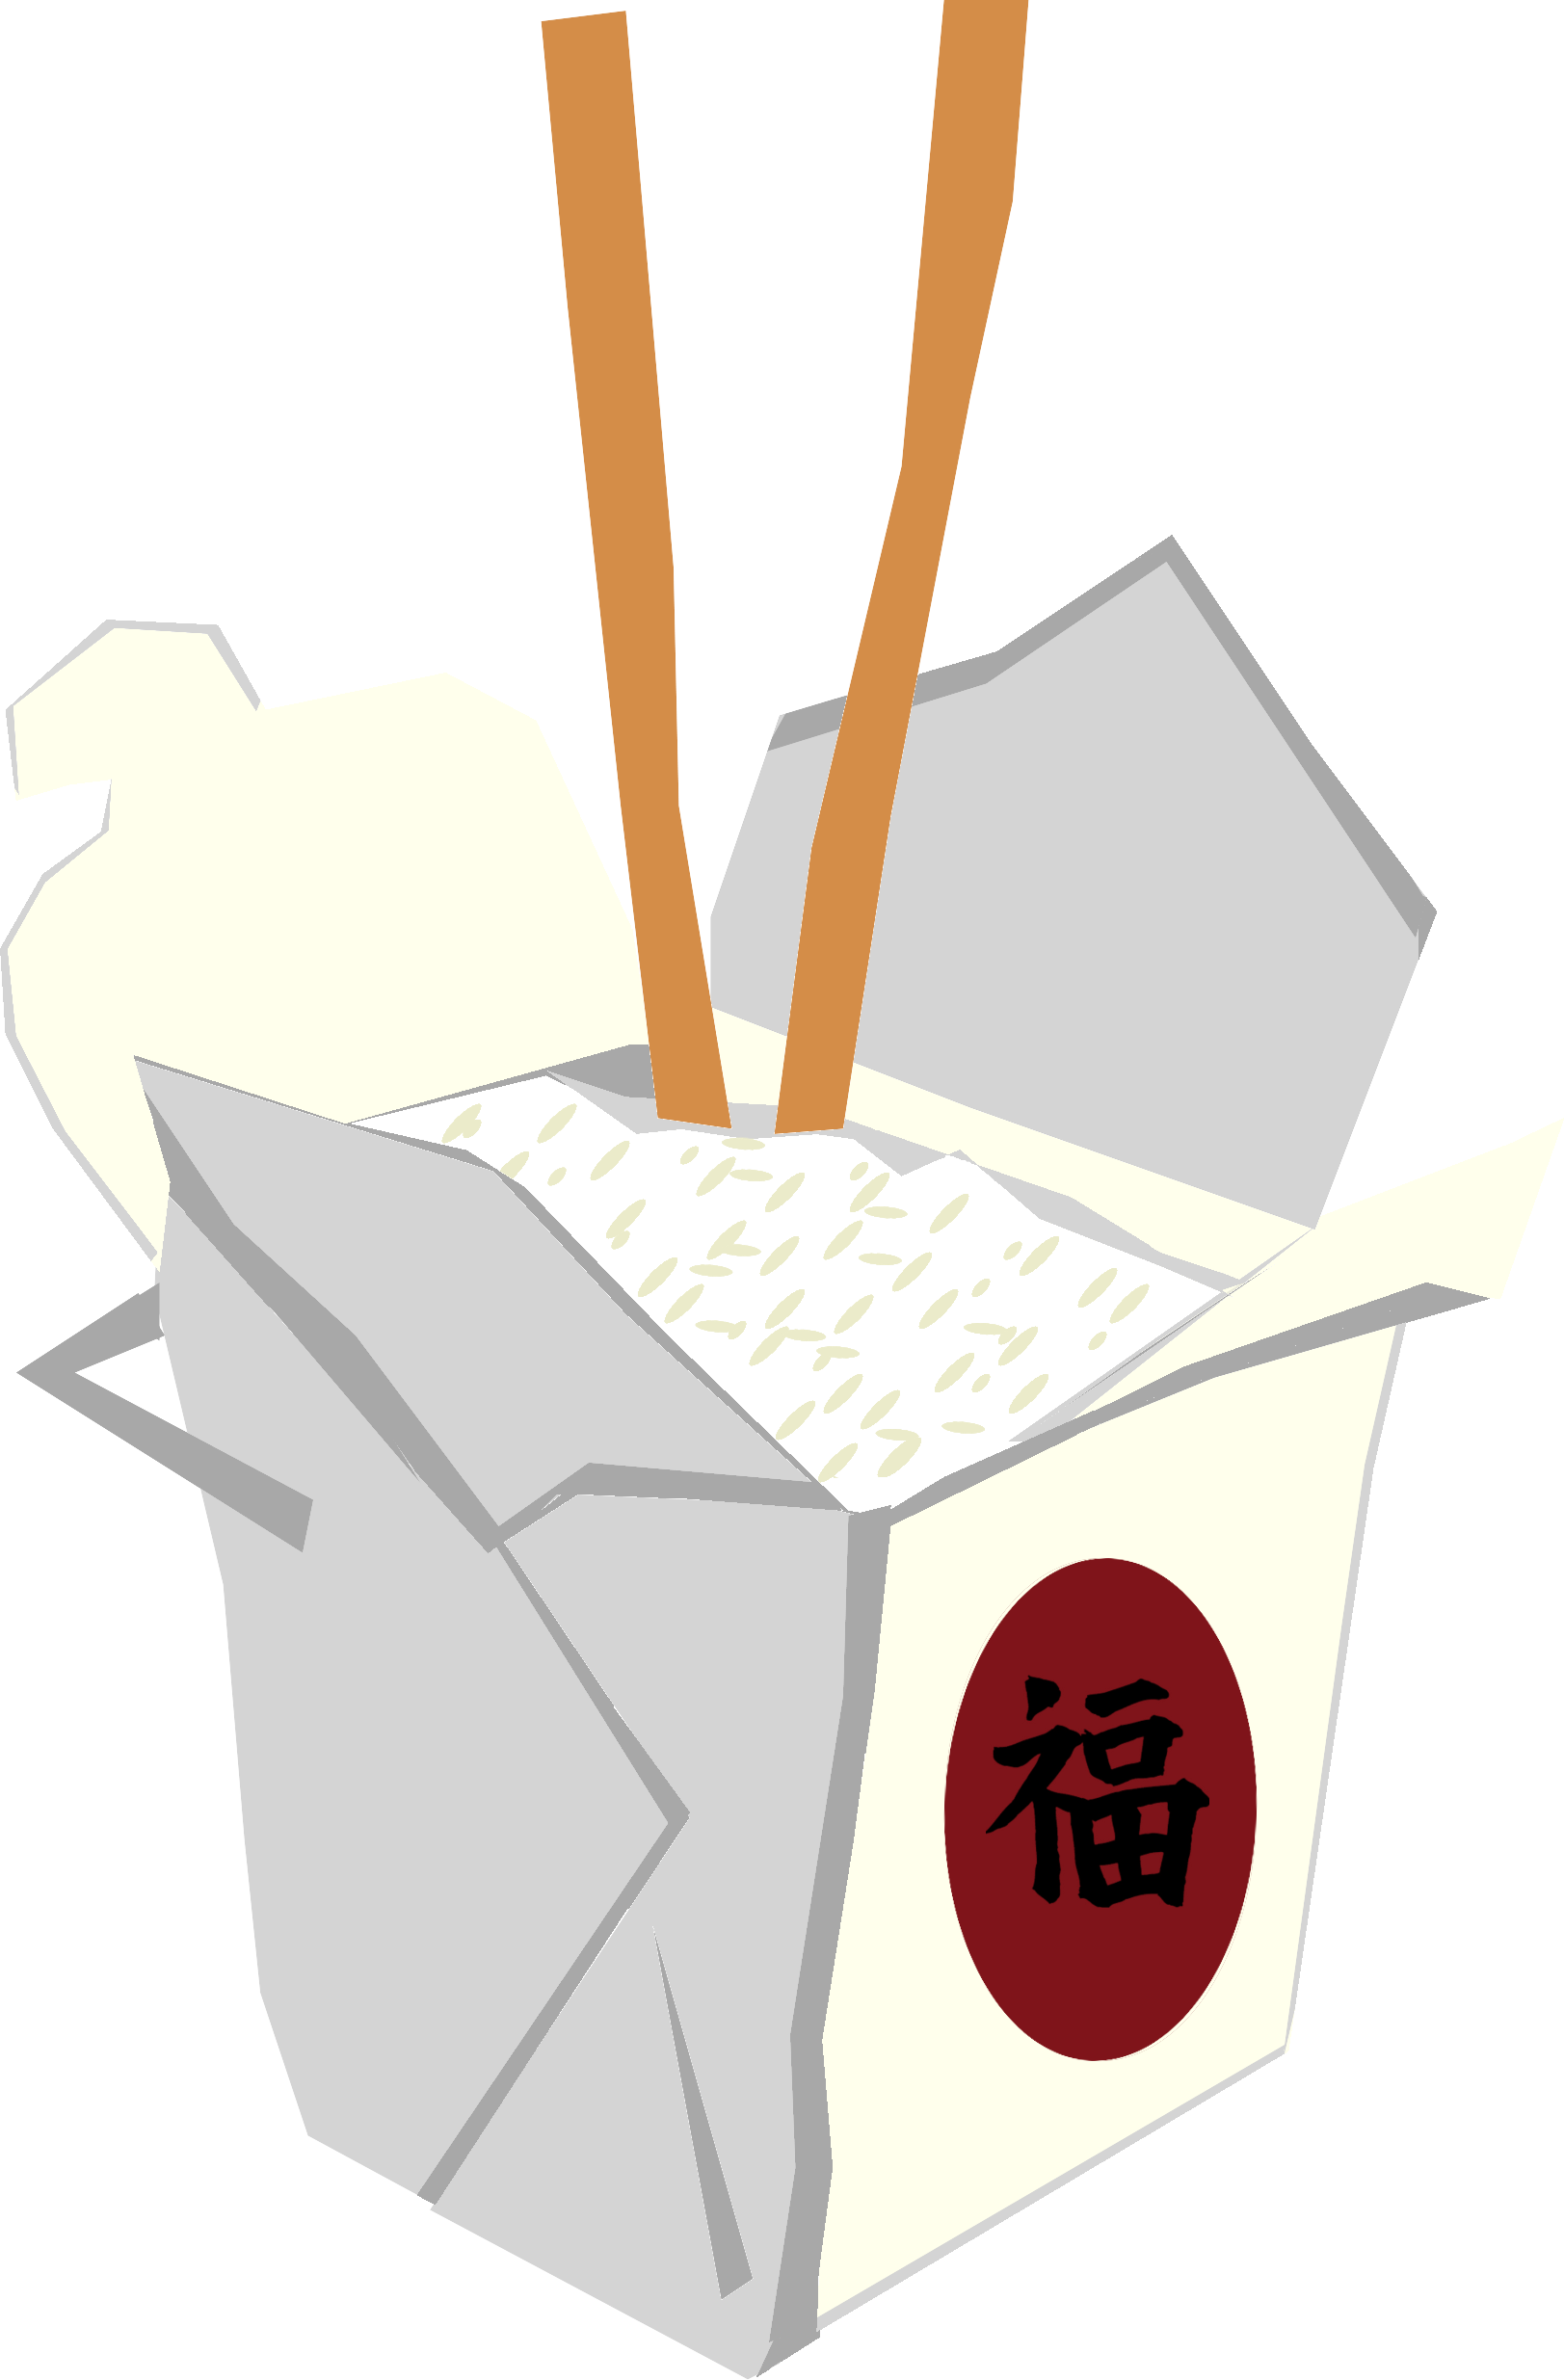 Box clipart out Clipart clipart box box Takeout